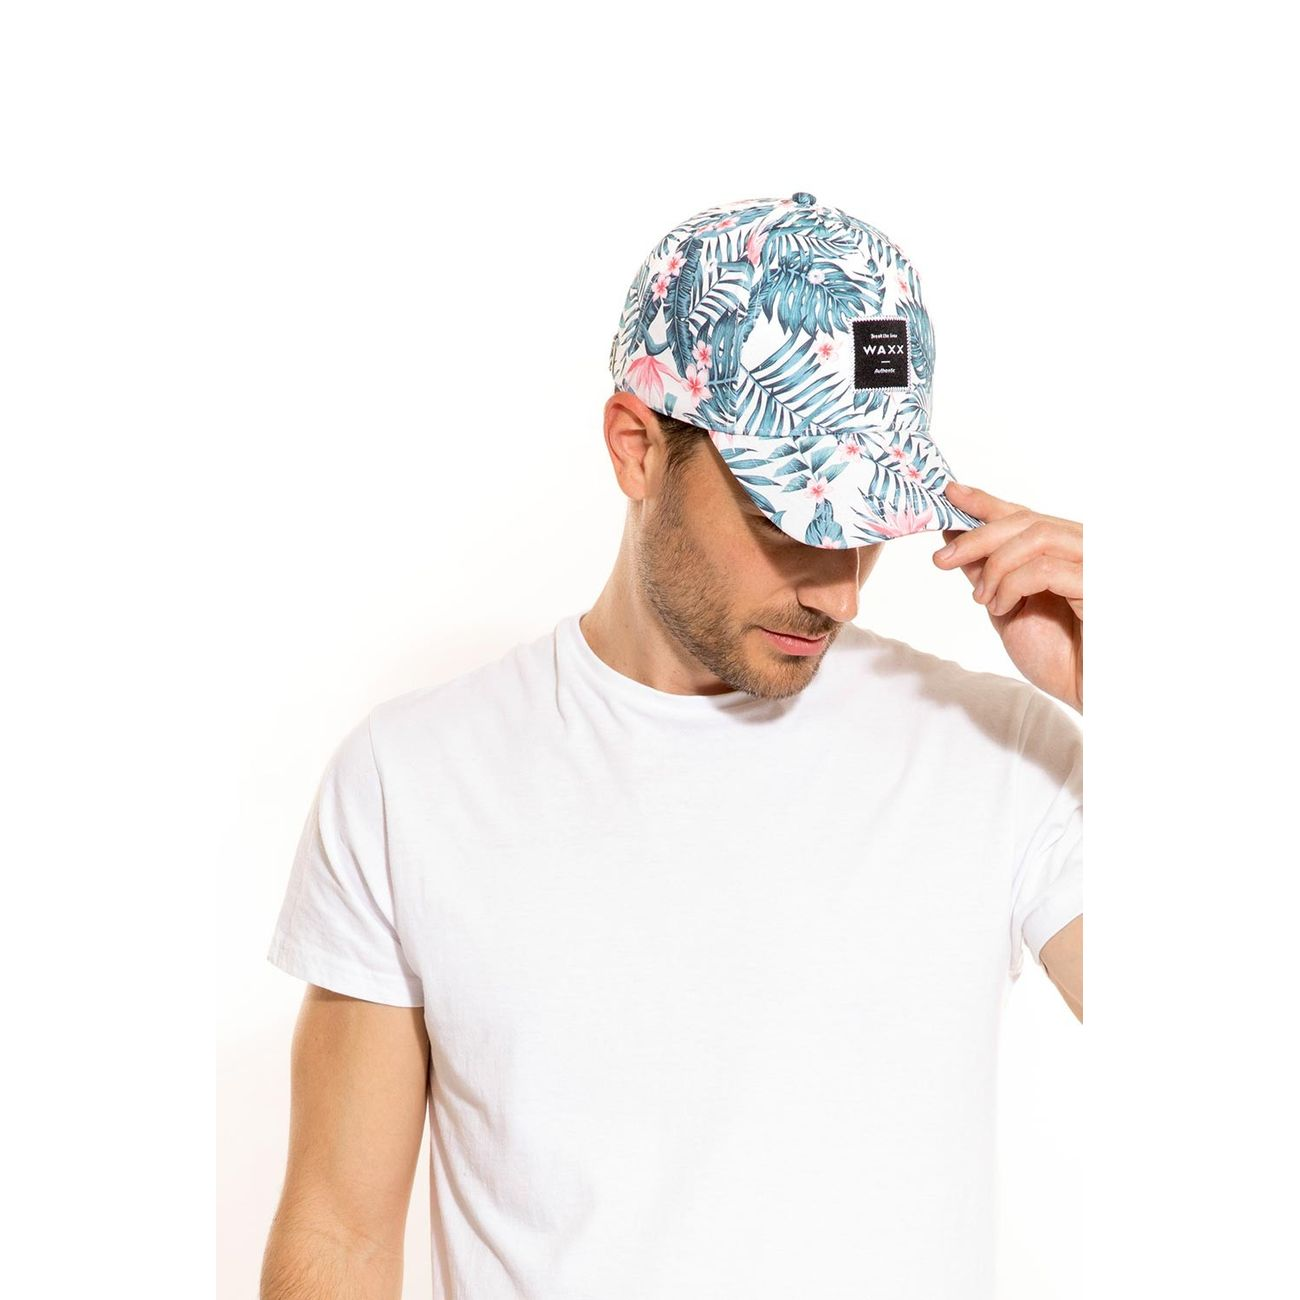 Casquette Summer ModeLifestyle Casquette Waxx Adulte ModeLifestyle Adulte ModeLifestyle Summer Waxx Adulte tCdsQhr